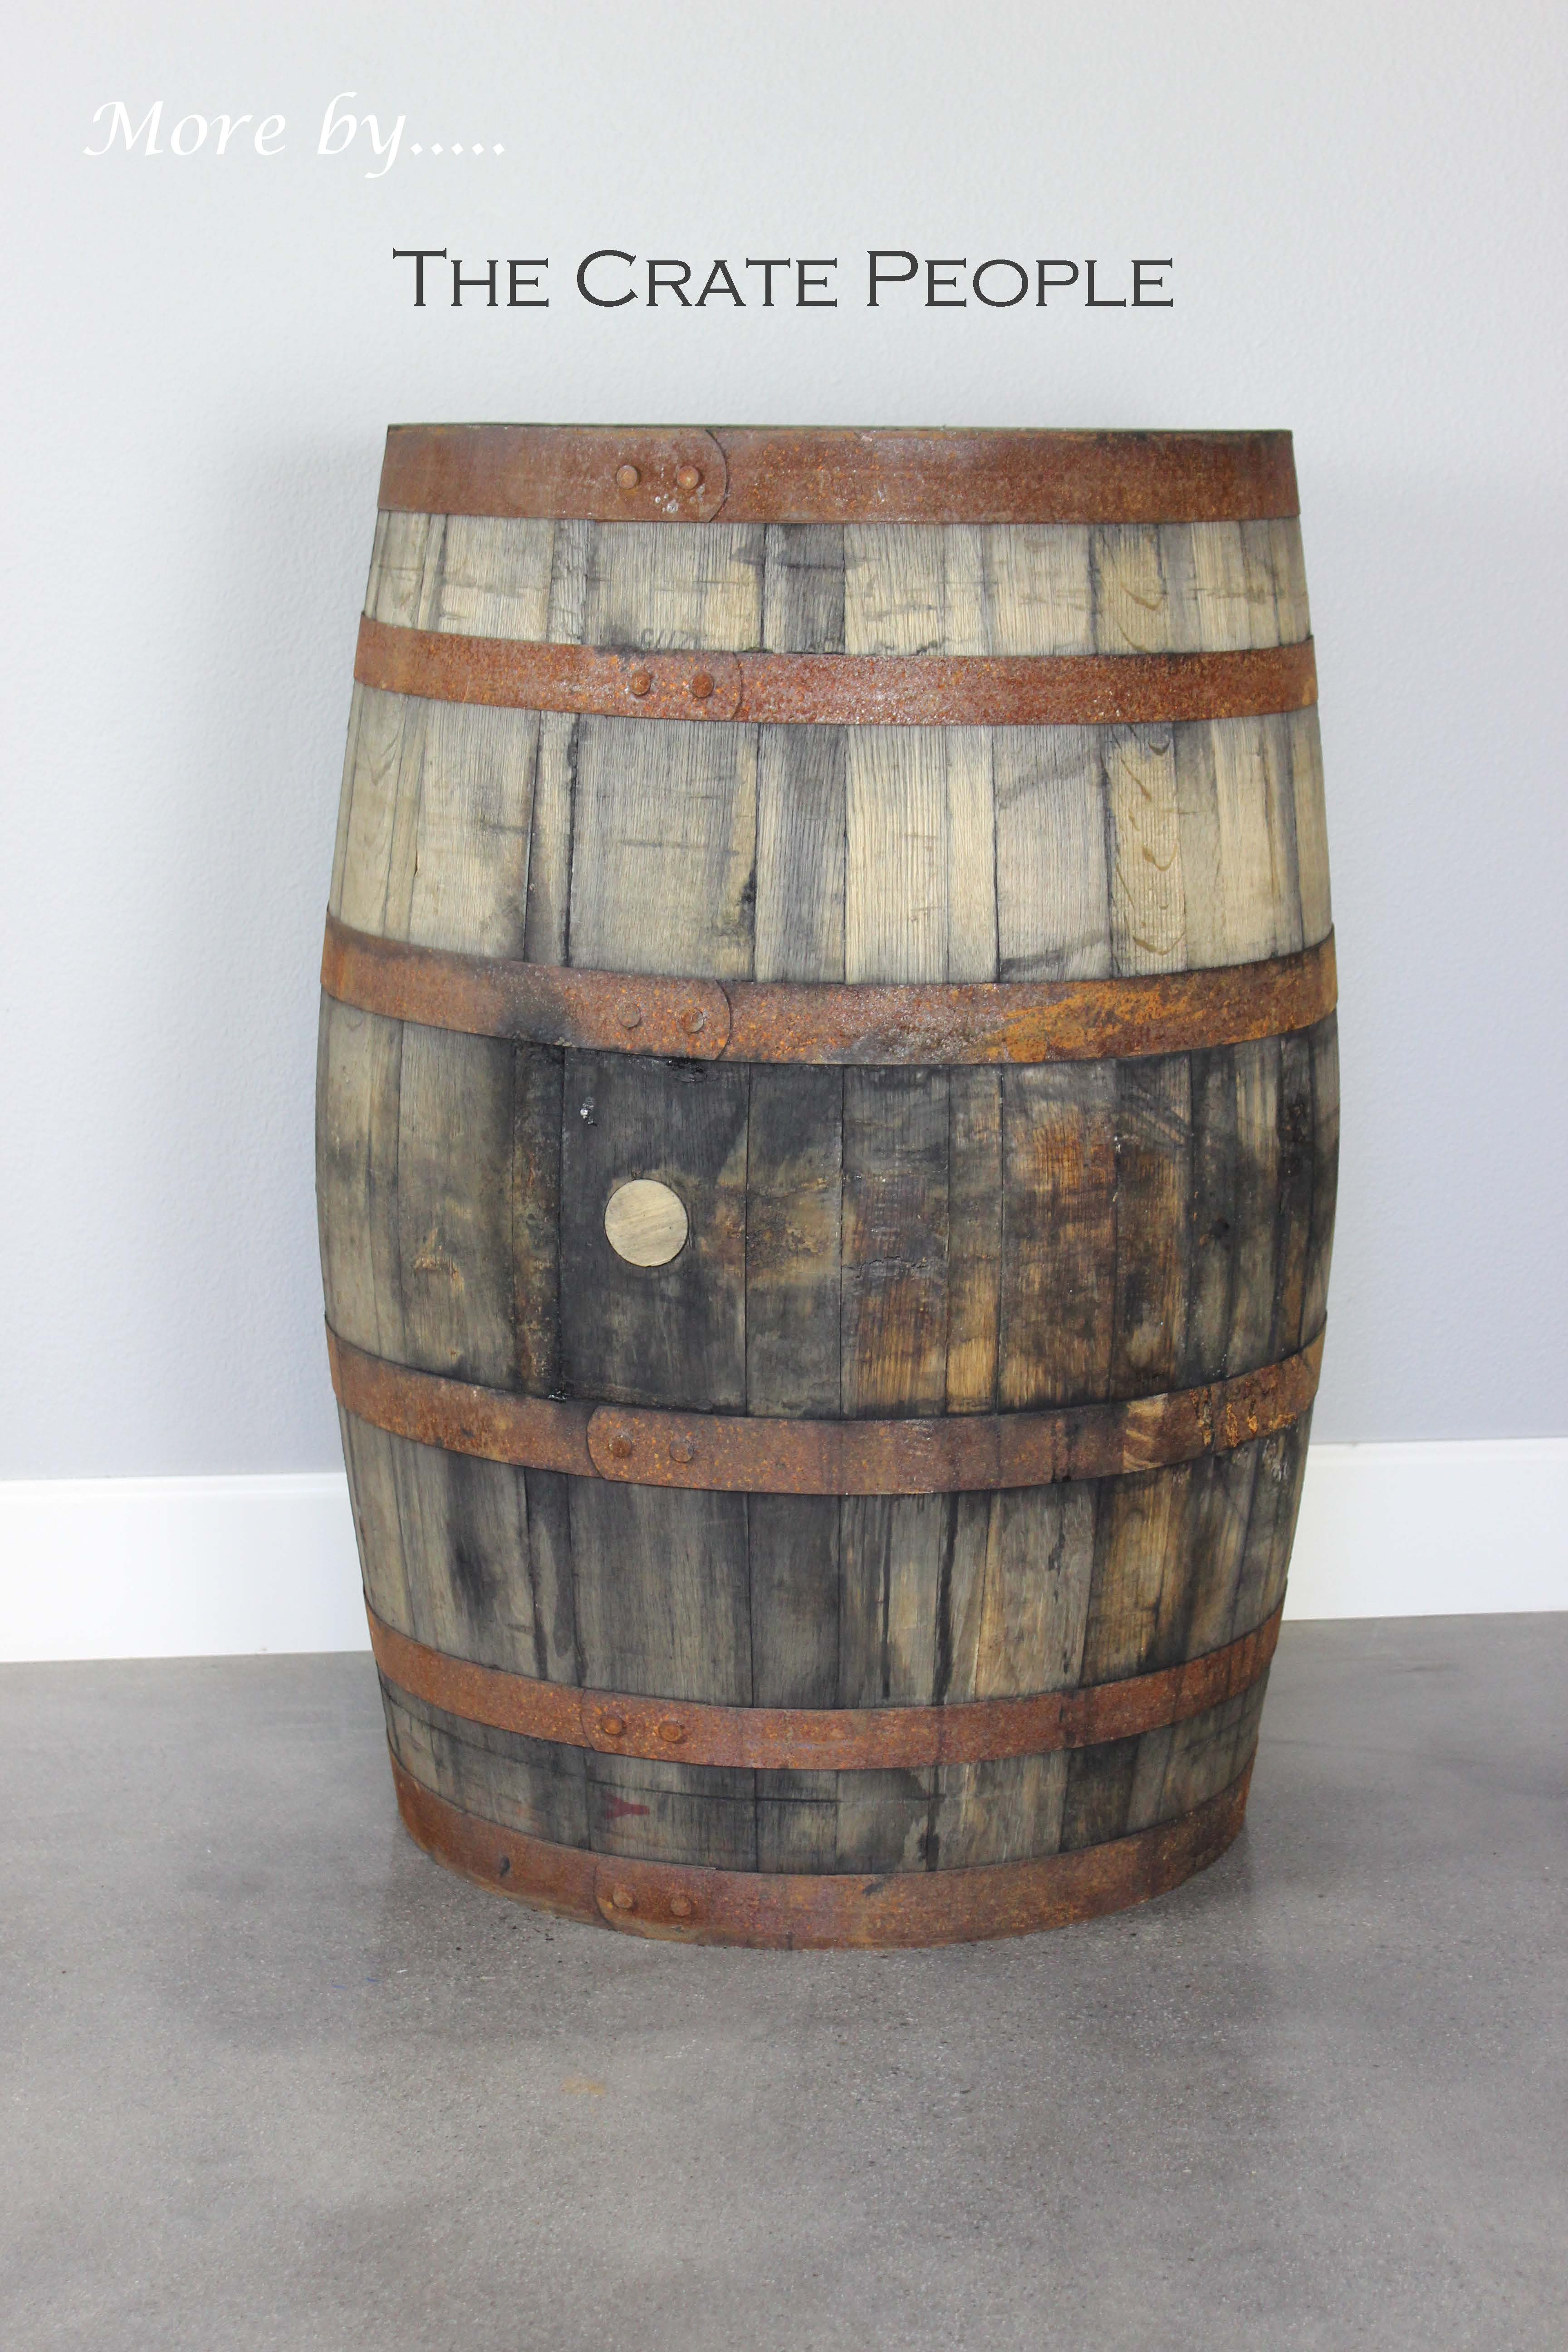 Rent Whiskey Barrels The Crate People